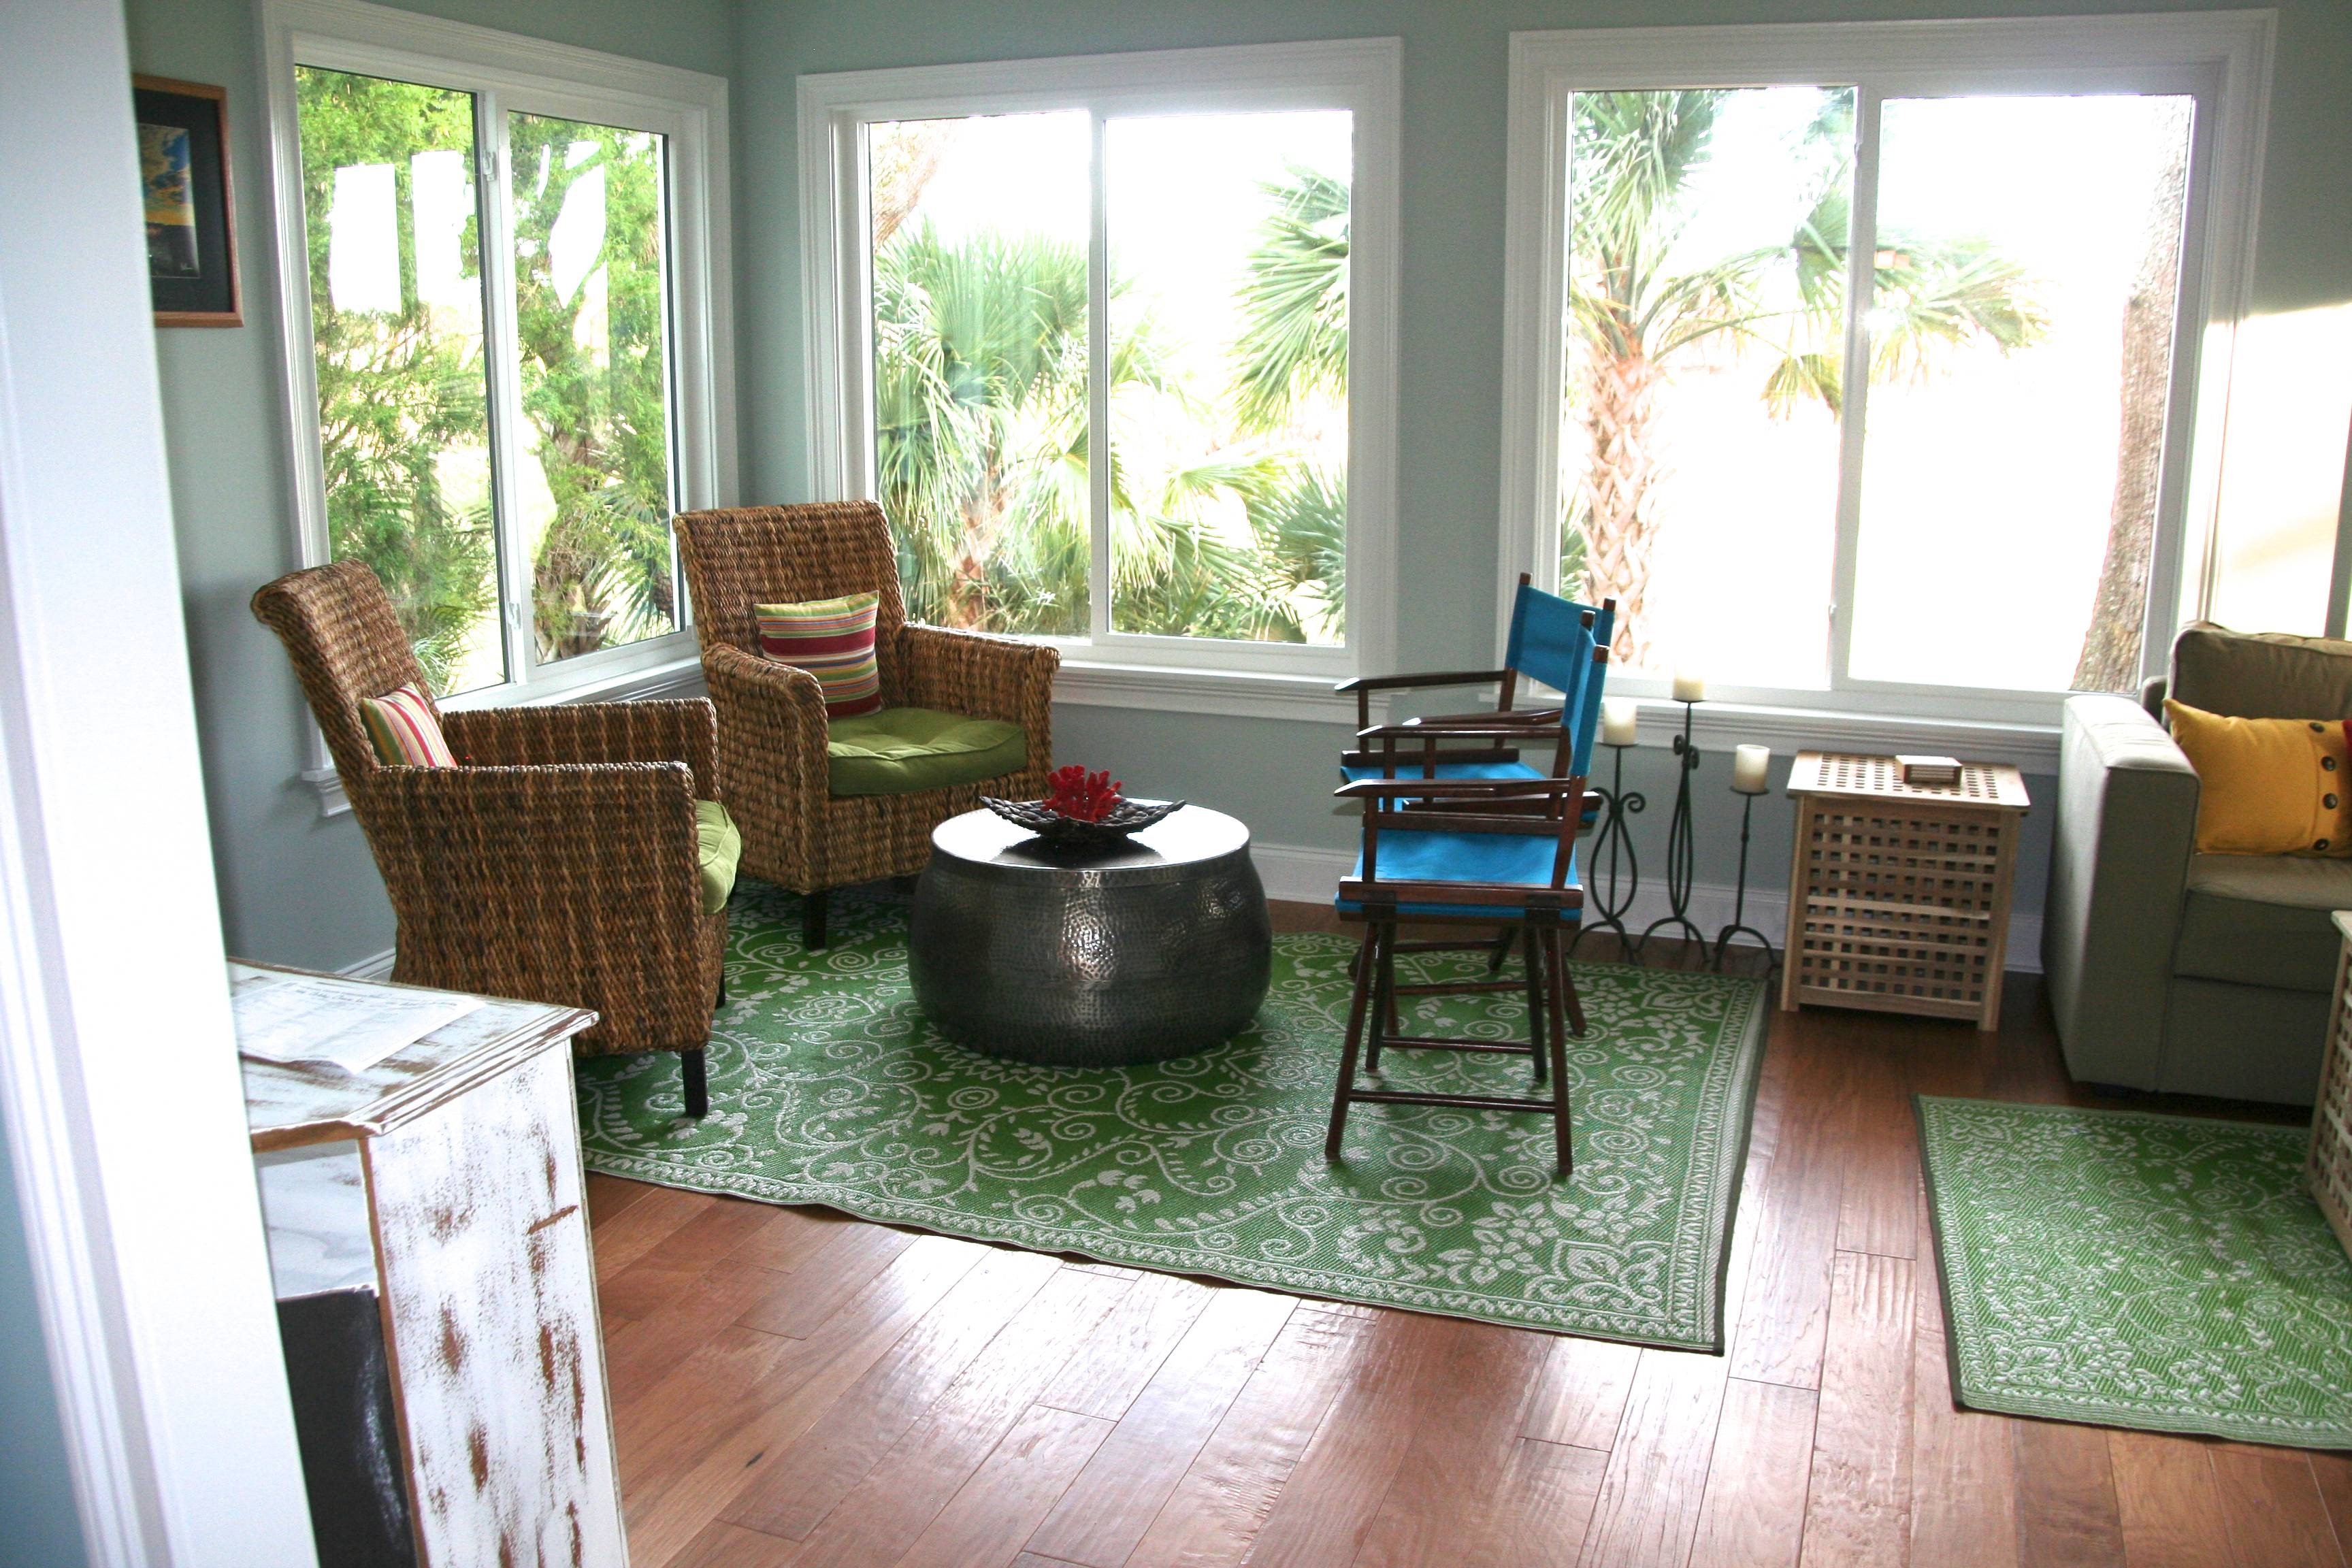 There are comfortable seating nooks allowing for quiet conversation with your guests.